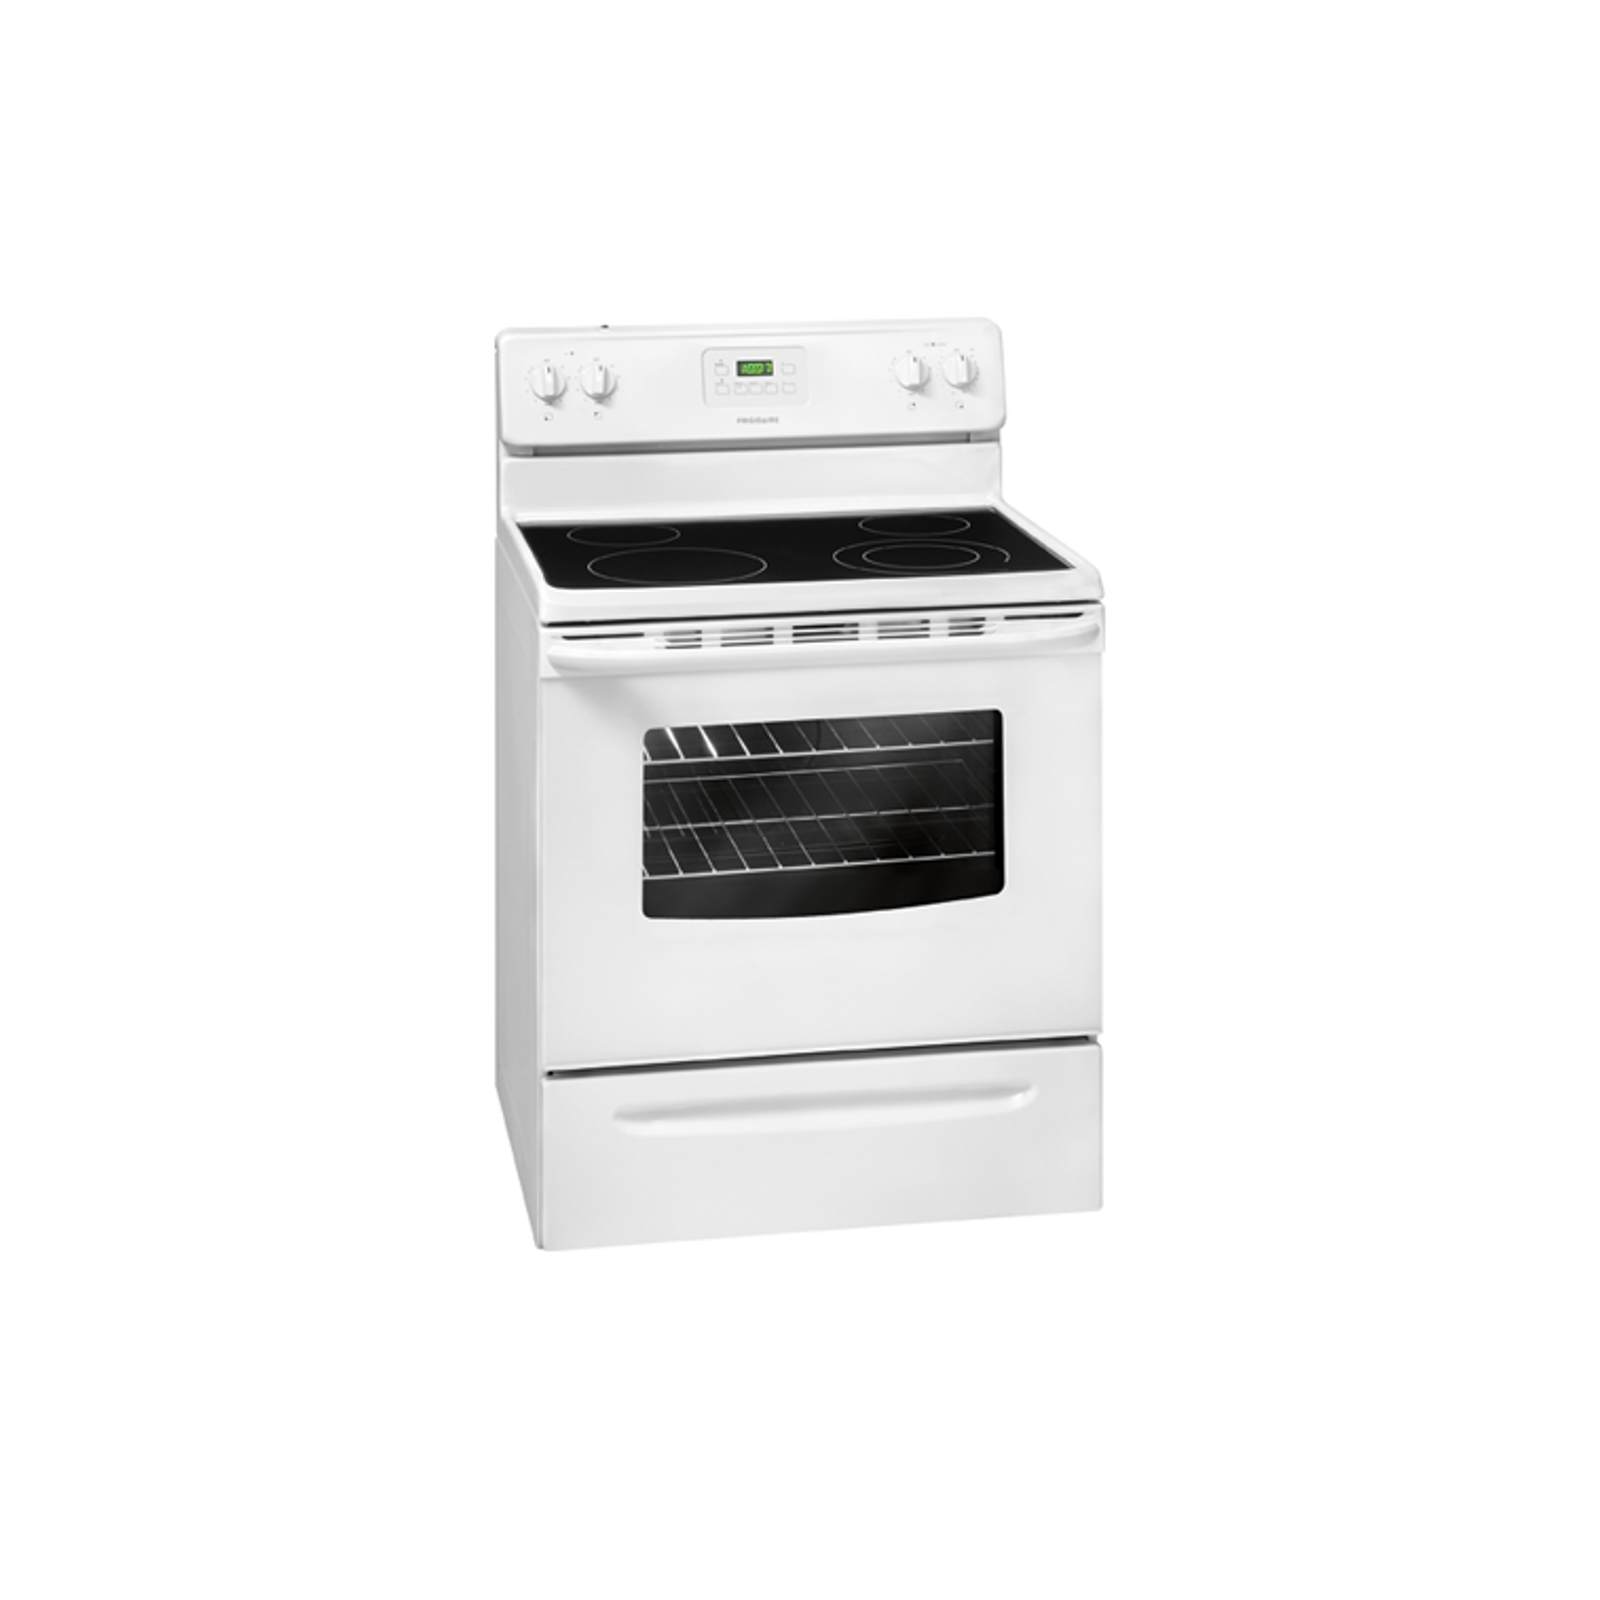 Frigidaire FFEF3013LW 4.8 cu. ft. Electric Range